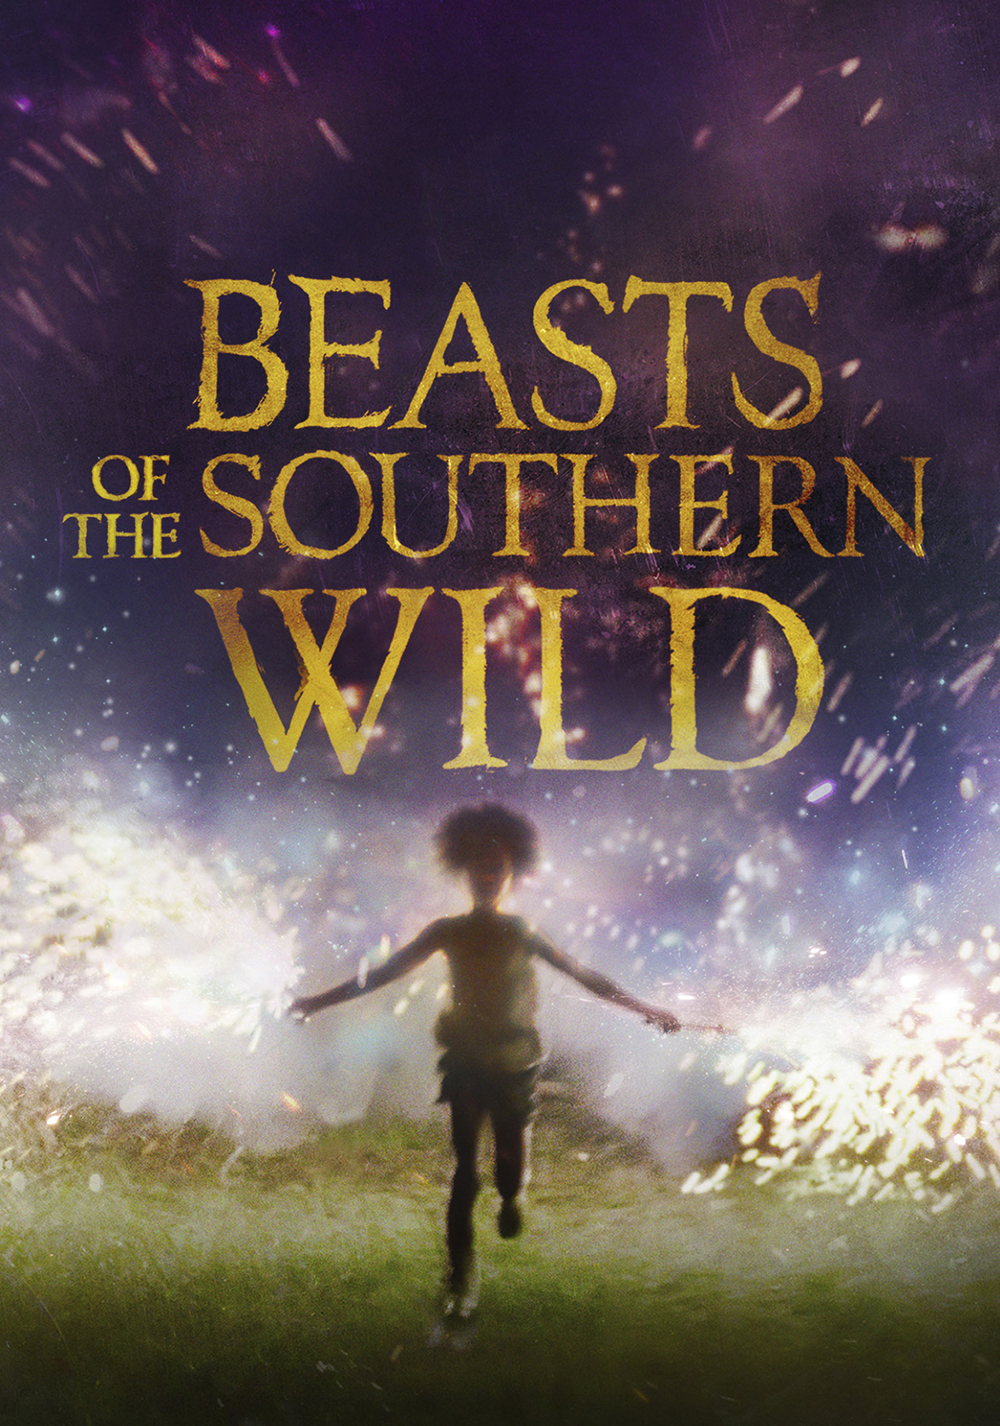 Image result for beasts of the southern wild poster